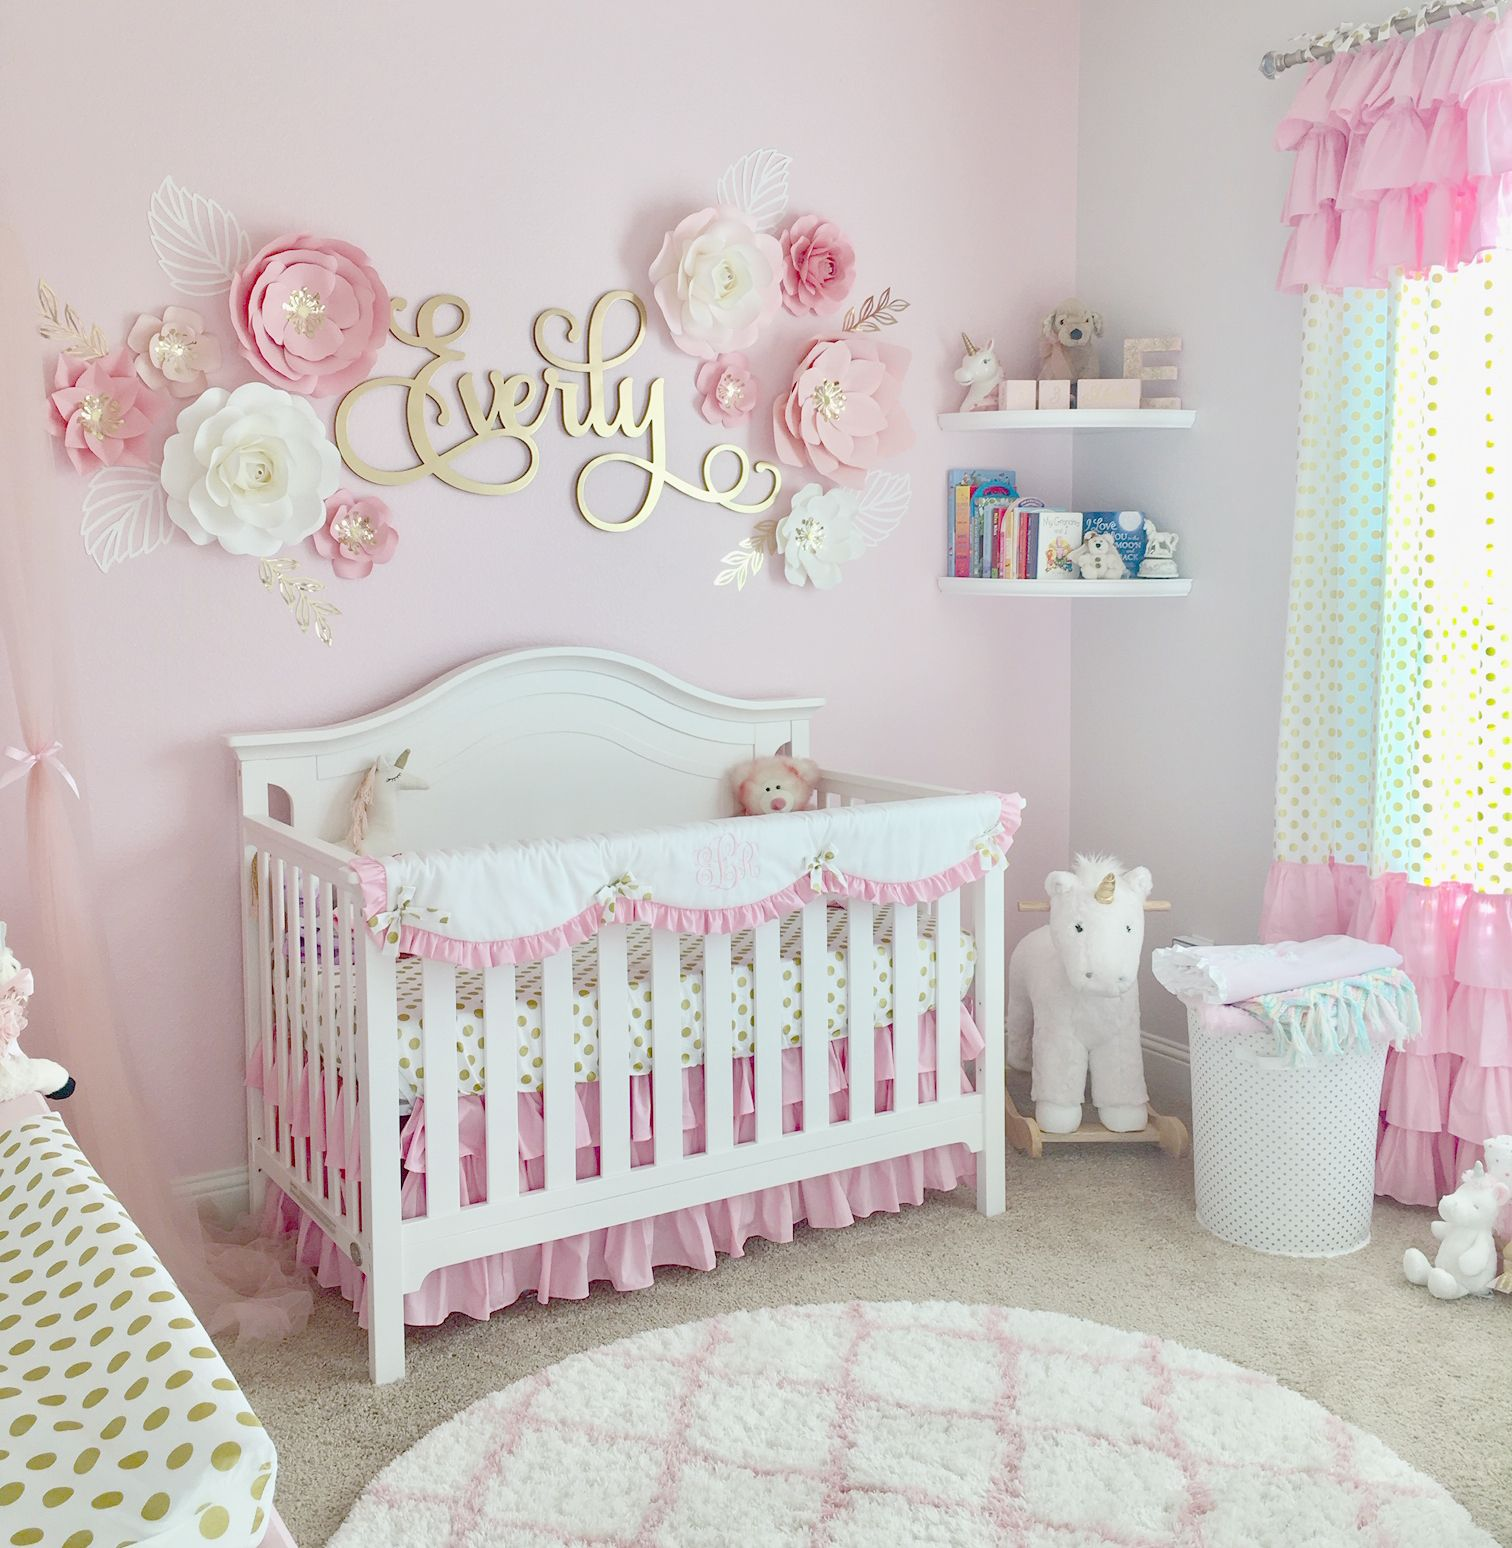 A Pink Gold Nursery For Baby Everly Project Nursery Pink Baby Room Girl Nursery Room Pink Gold Nursery